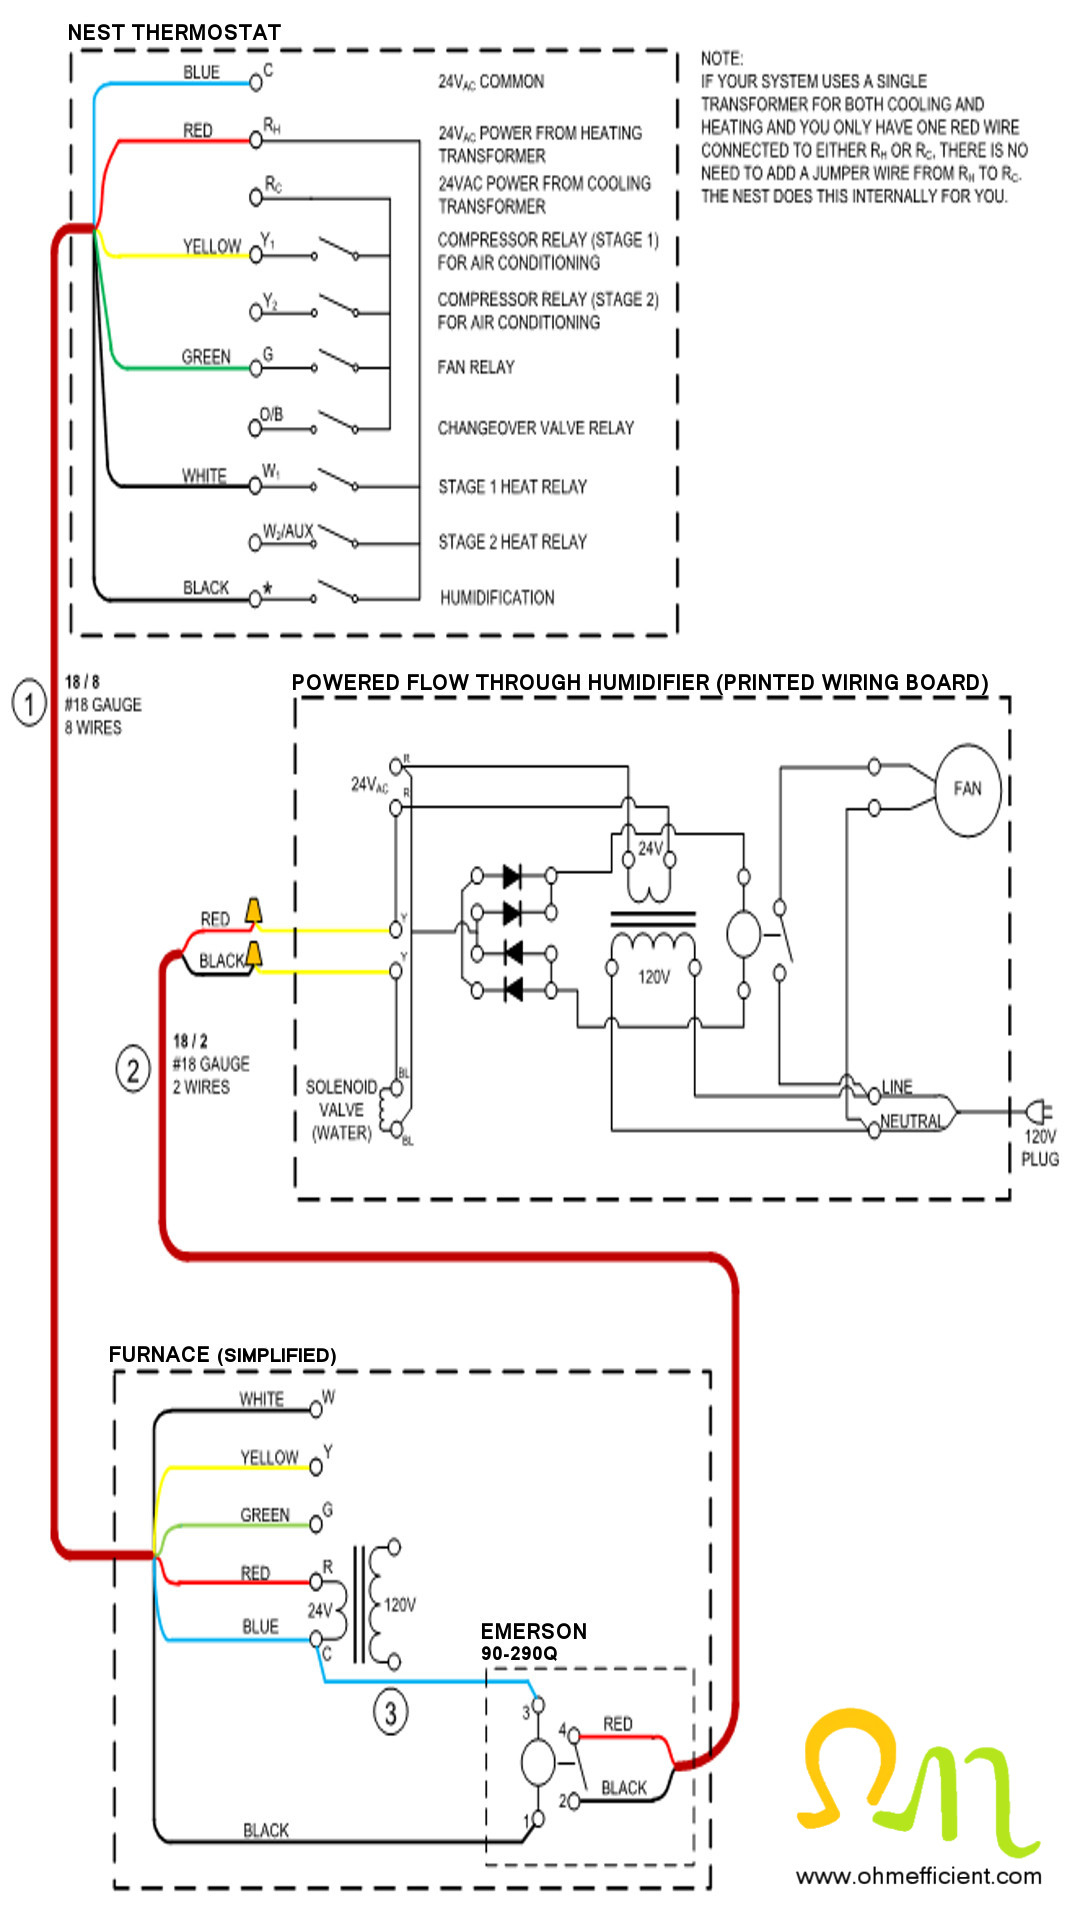 How To Connect & Setup A Nest Thermostat To Function As A Humidistat - Nest Humidifier Wiring Diagram With No C Terminal